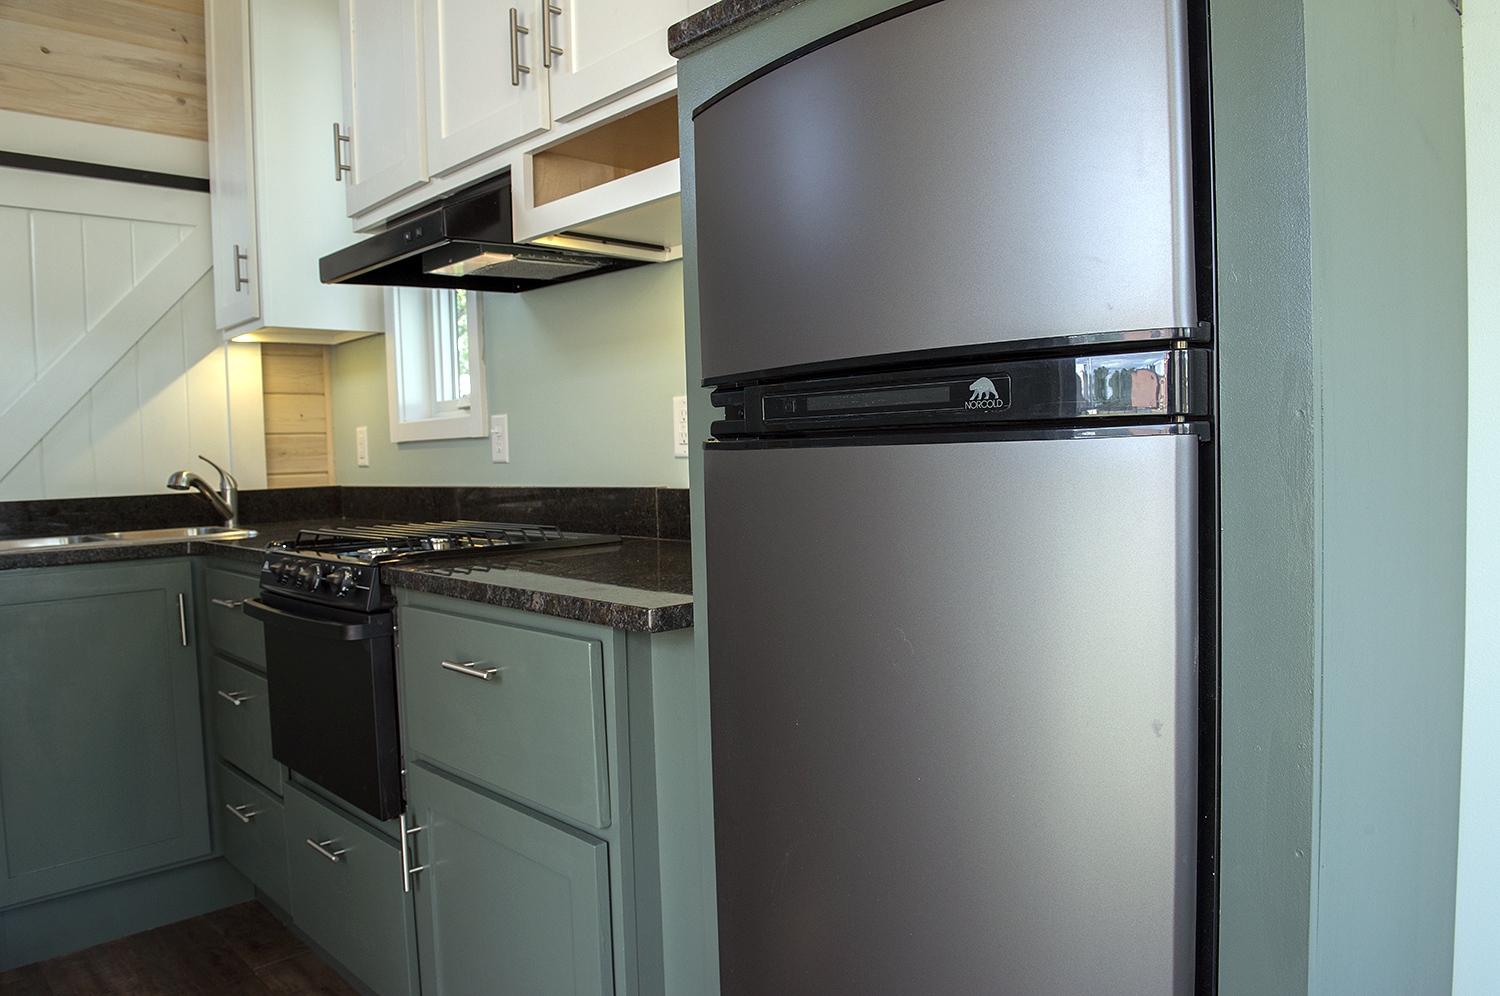 Bemidji State University tiny house Norcold gas/electric refrigerator, full-height kitchen cabinets, granite countertops, Atwood LP gas range and slide-in cooktop.